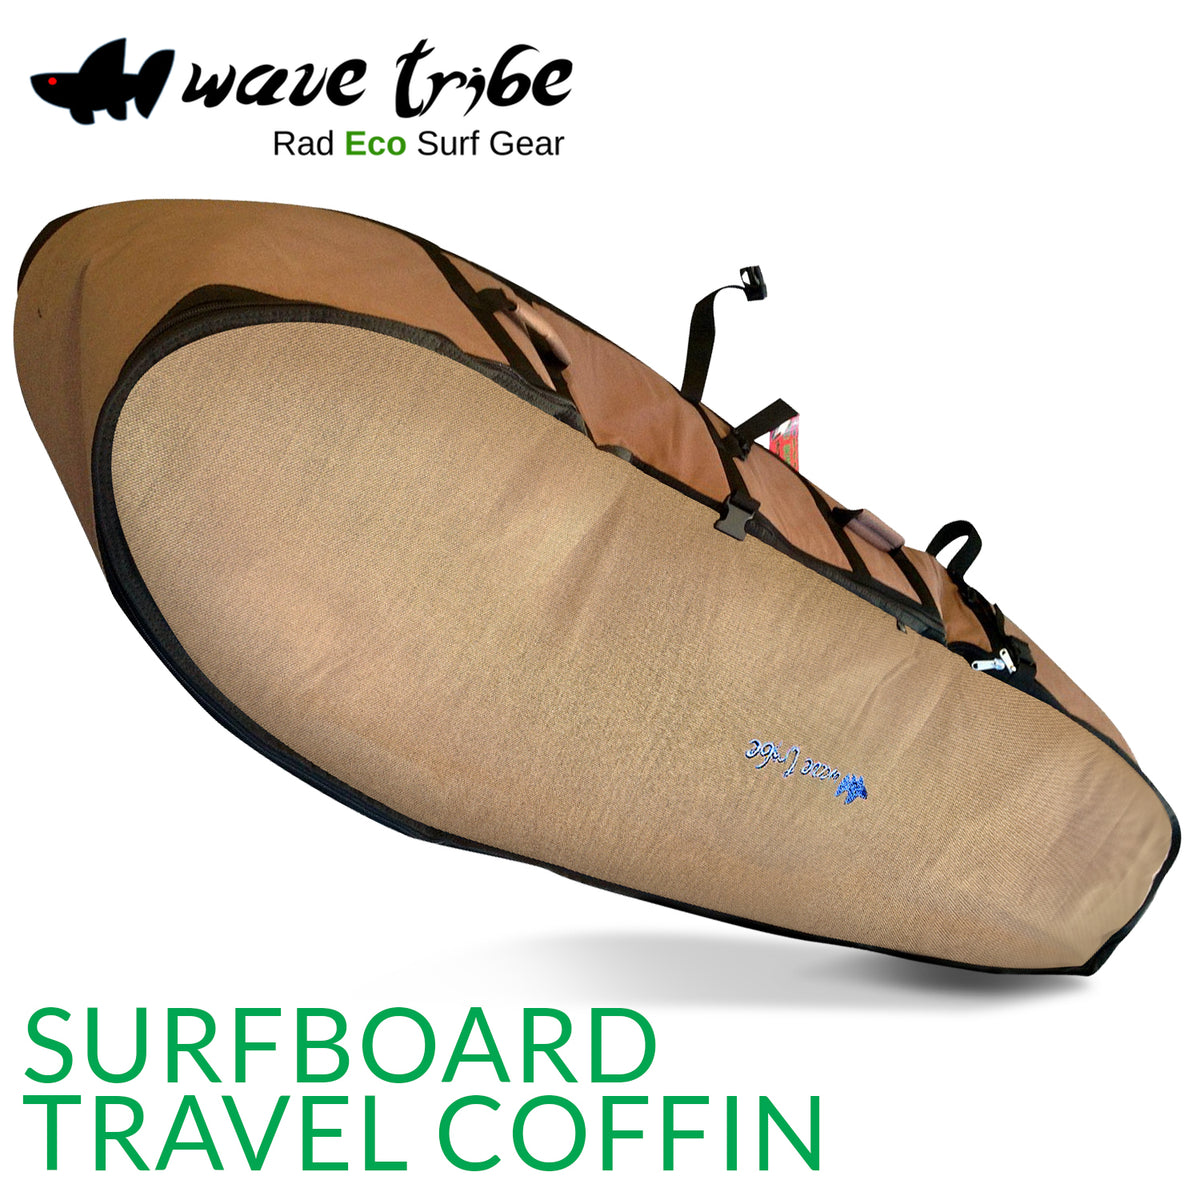 Hemp Travel Coffin 7'6